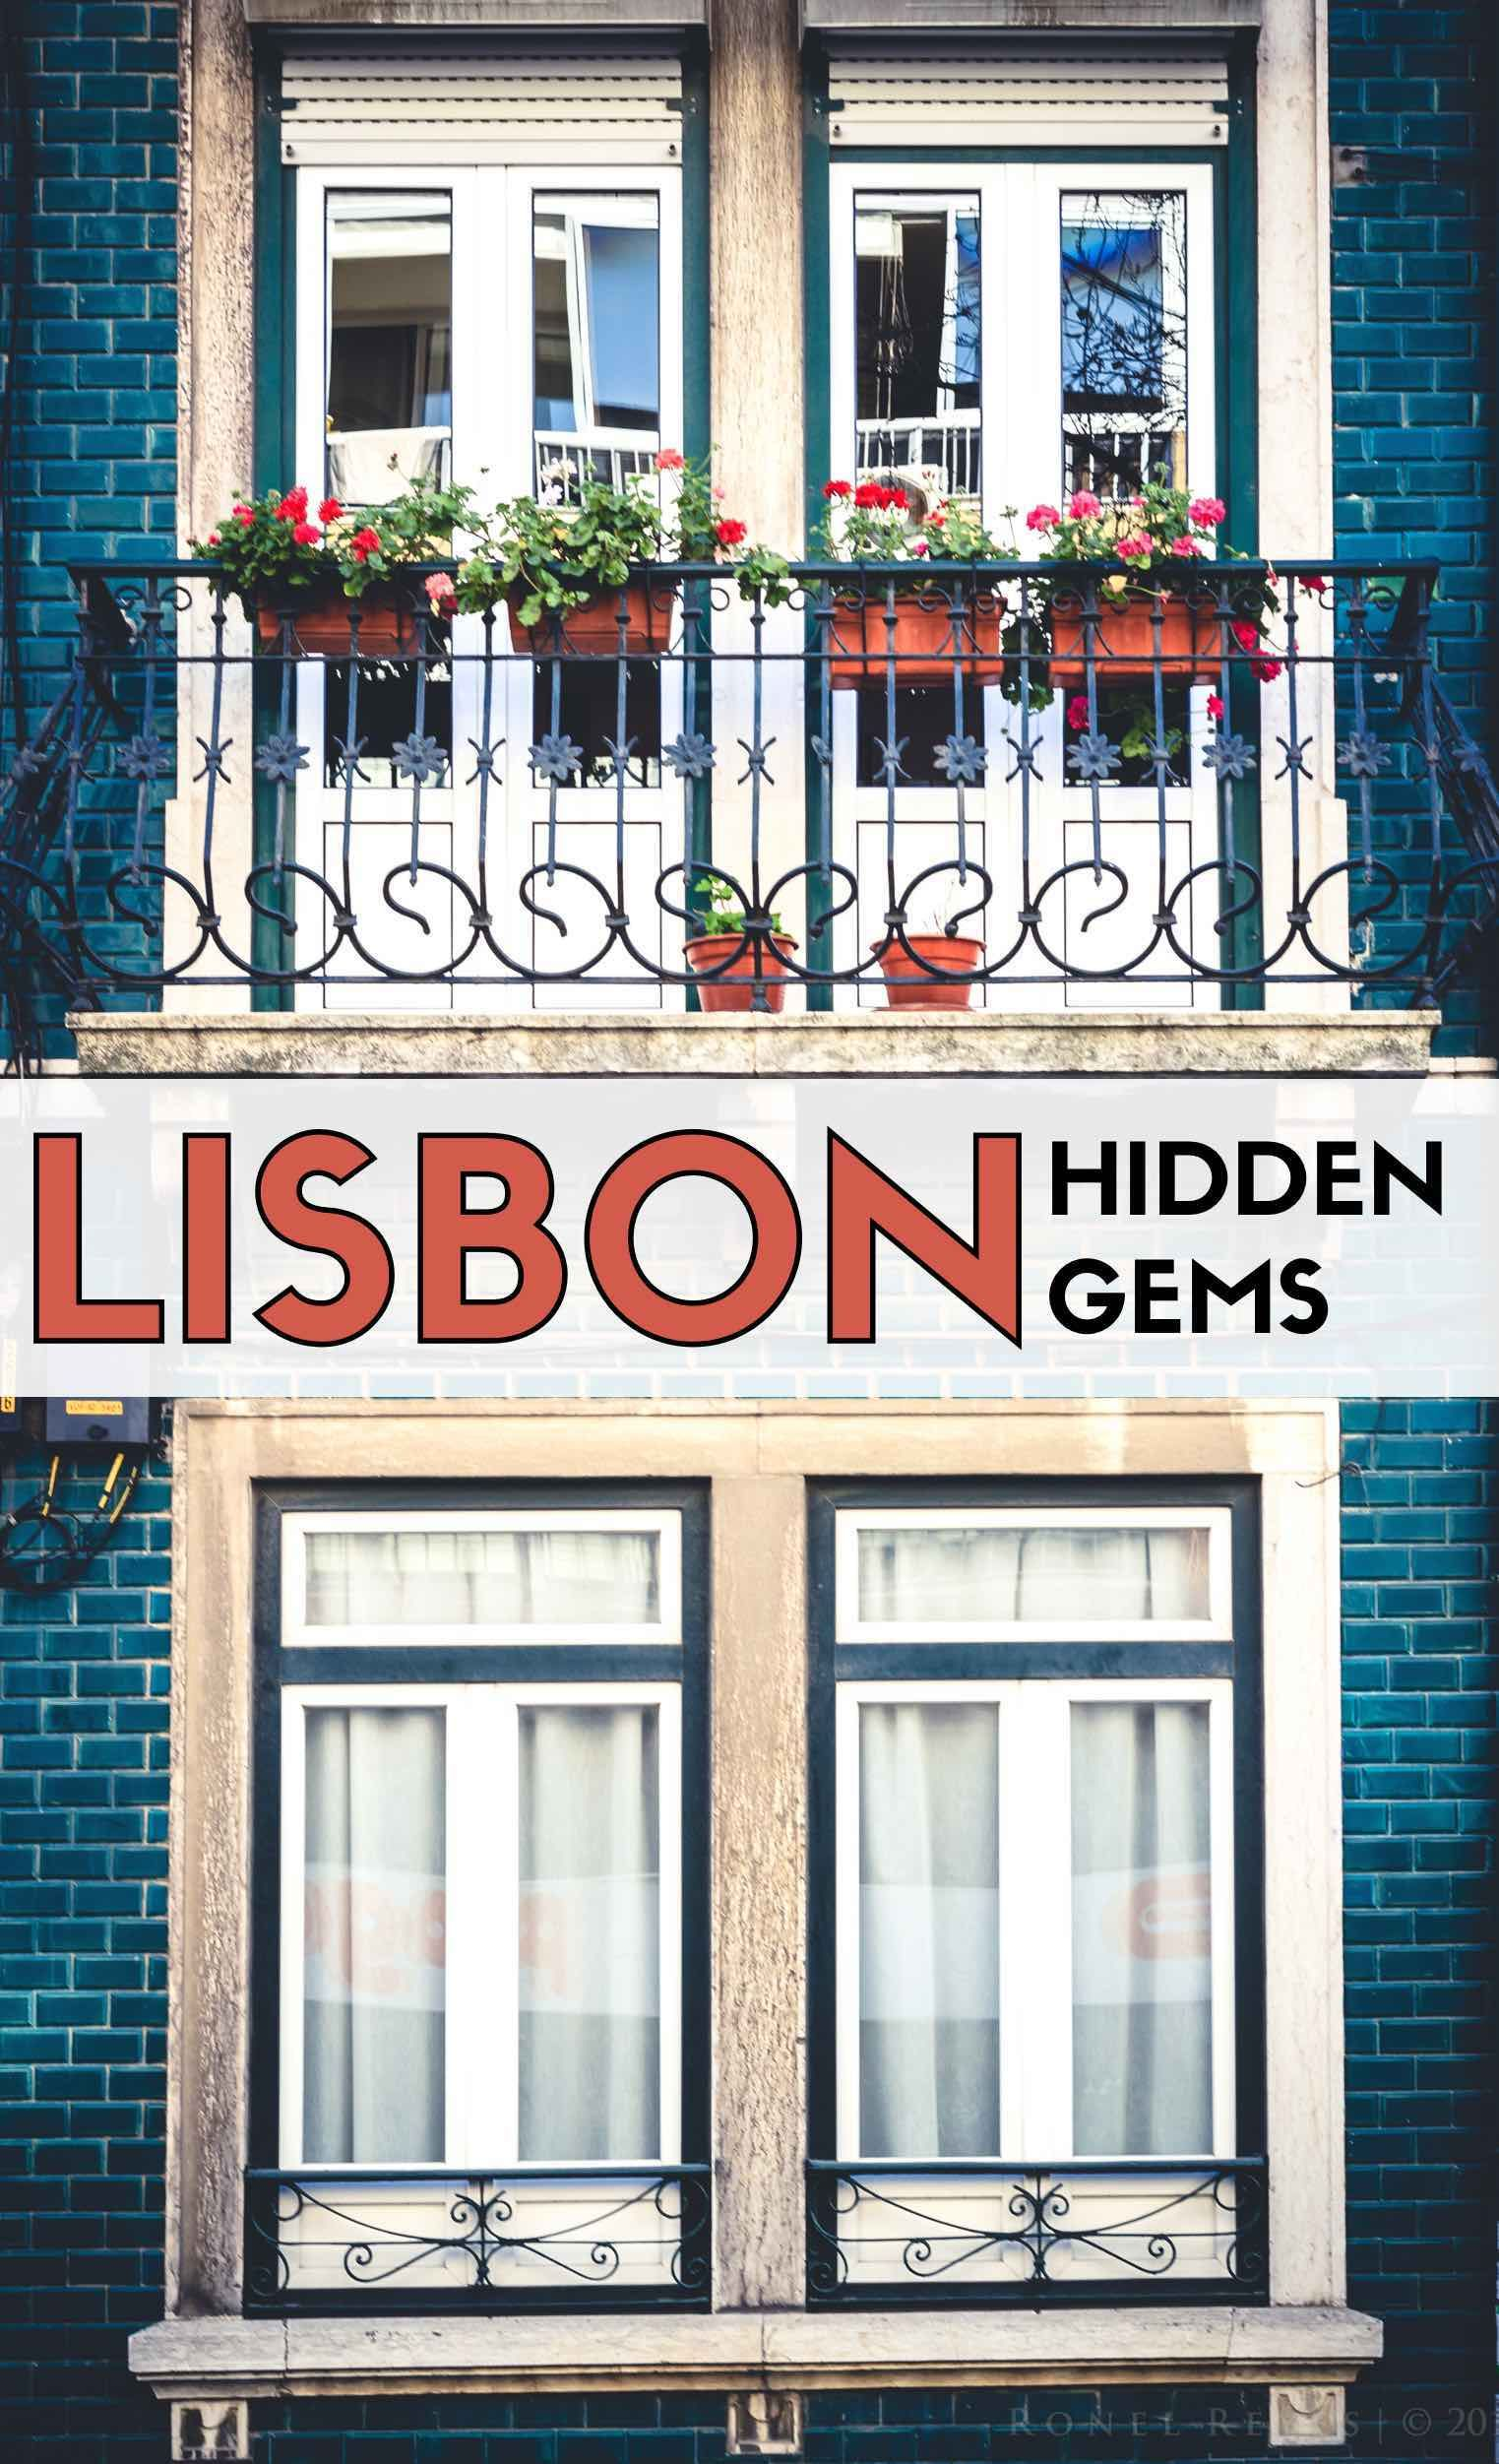 Tired of tourists? Here's some places in beautiful Lisbon where there will be less of them. #Portugal #Lisbon #Lisboa #lisbon